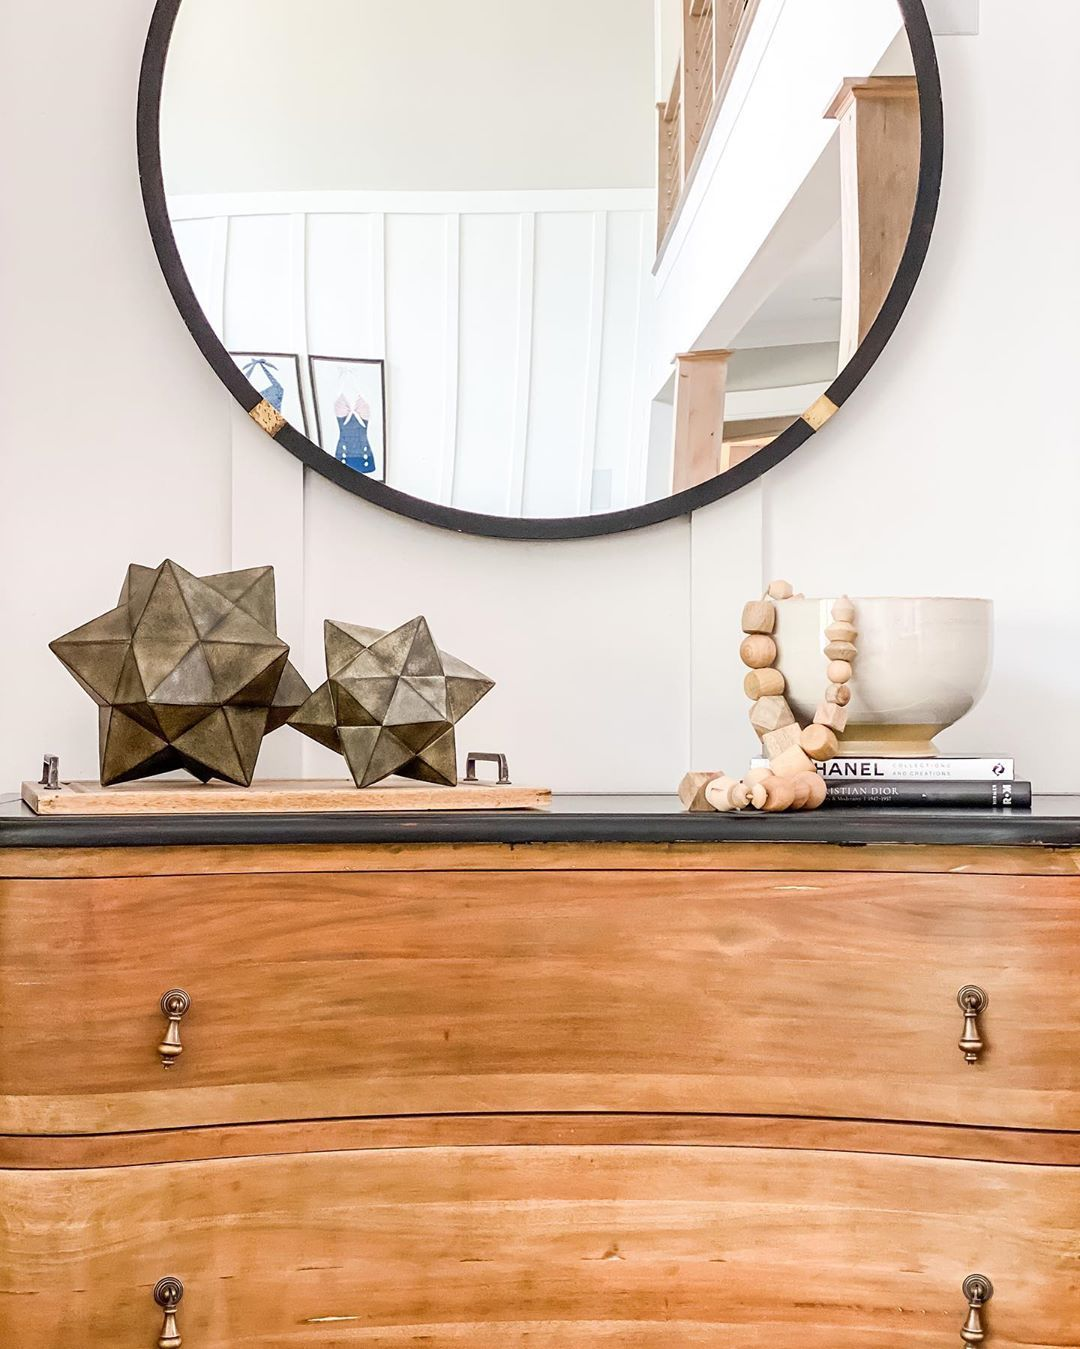 One of our philosophies at RDI is that a console table is always the perfect canvas to showcase all of your fun and funky accessories for the world to see 🙌🏼⠀ •⠀ •⠀ •⠀ #RDIlakehouse #consoletable #lakehouse #lakehousedesign #Lakehouseliving #lakehouselife #lakegaston #consoletablestyling #consoletabledecor #shelfie #shelfstyling #decor #interiordecorating #interiorinspo #interiordesign #raleigh #wakeforest #raleighnc #raleighinteriordesign #wakeforestinteriordesign